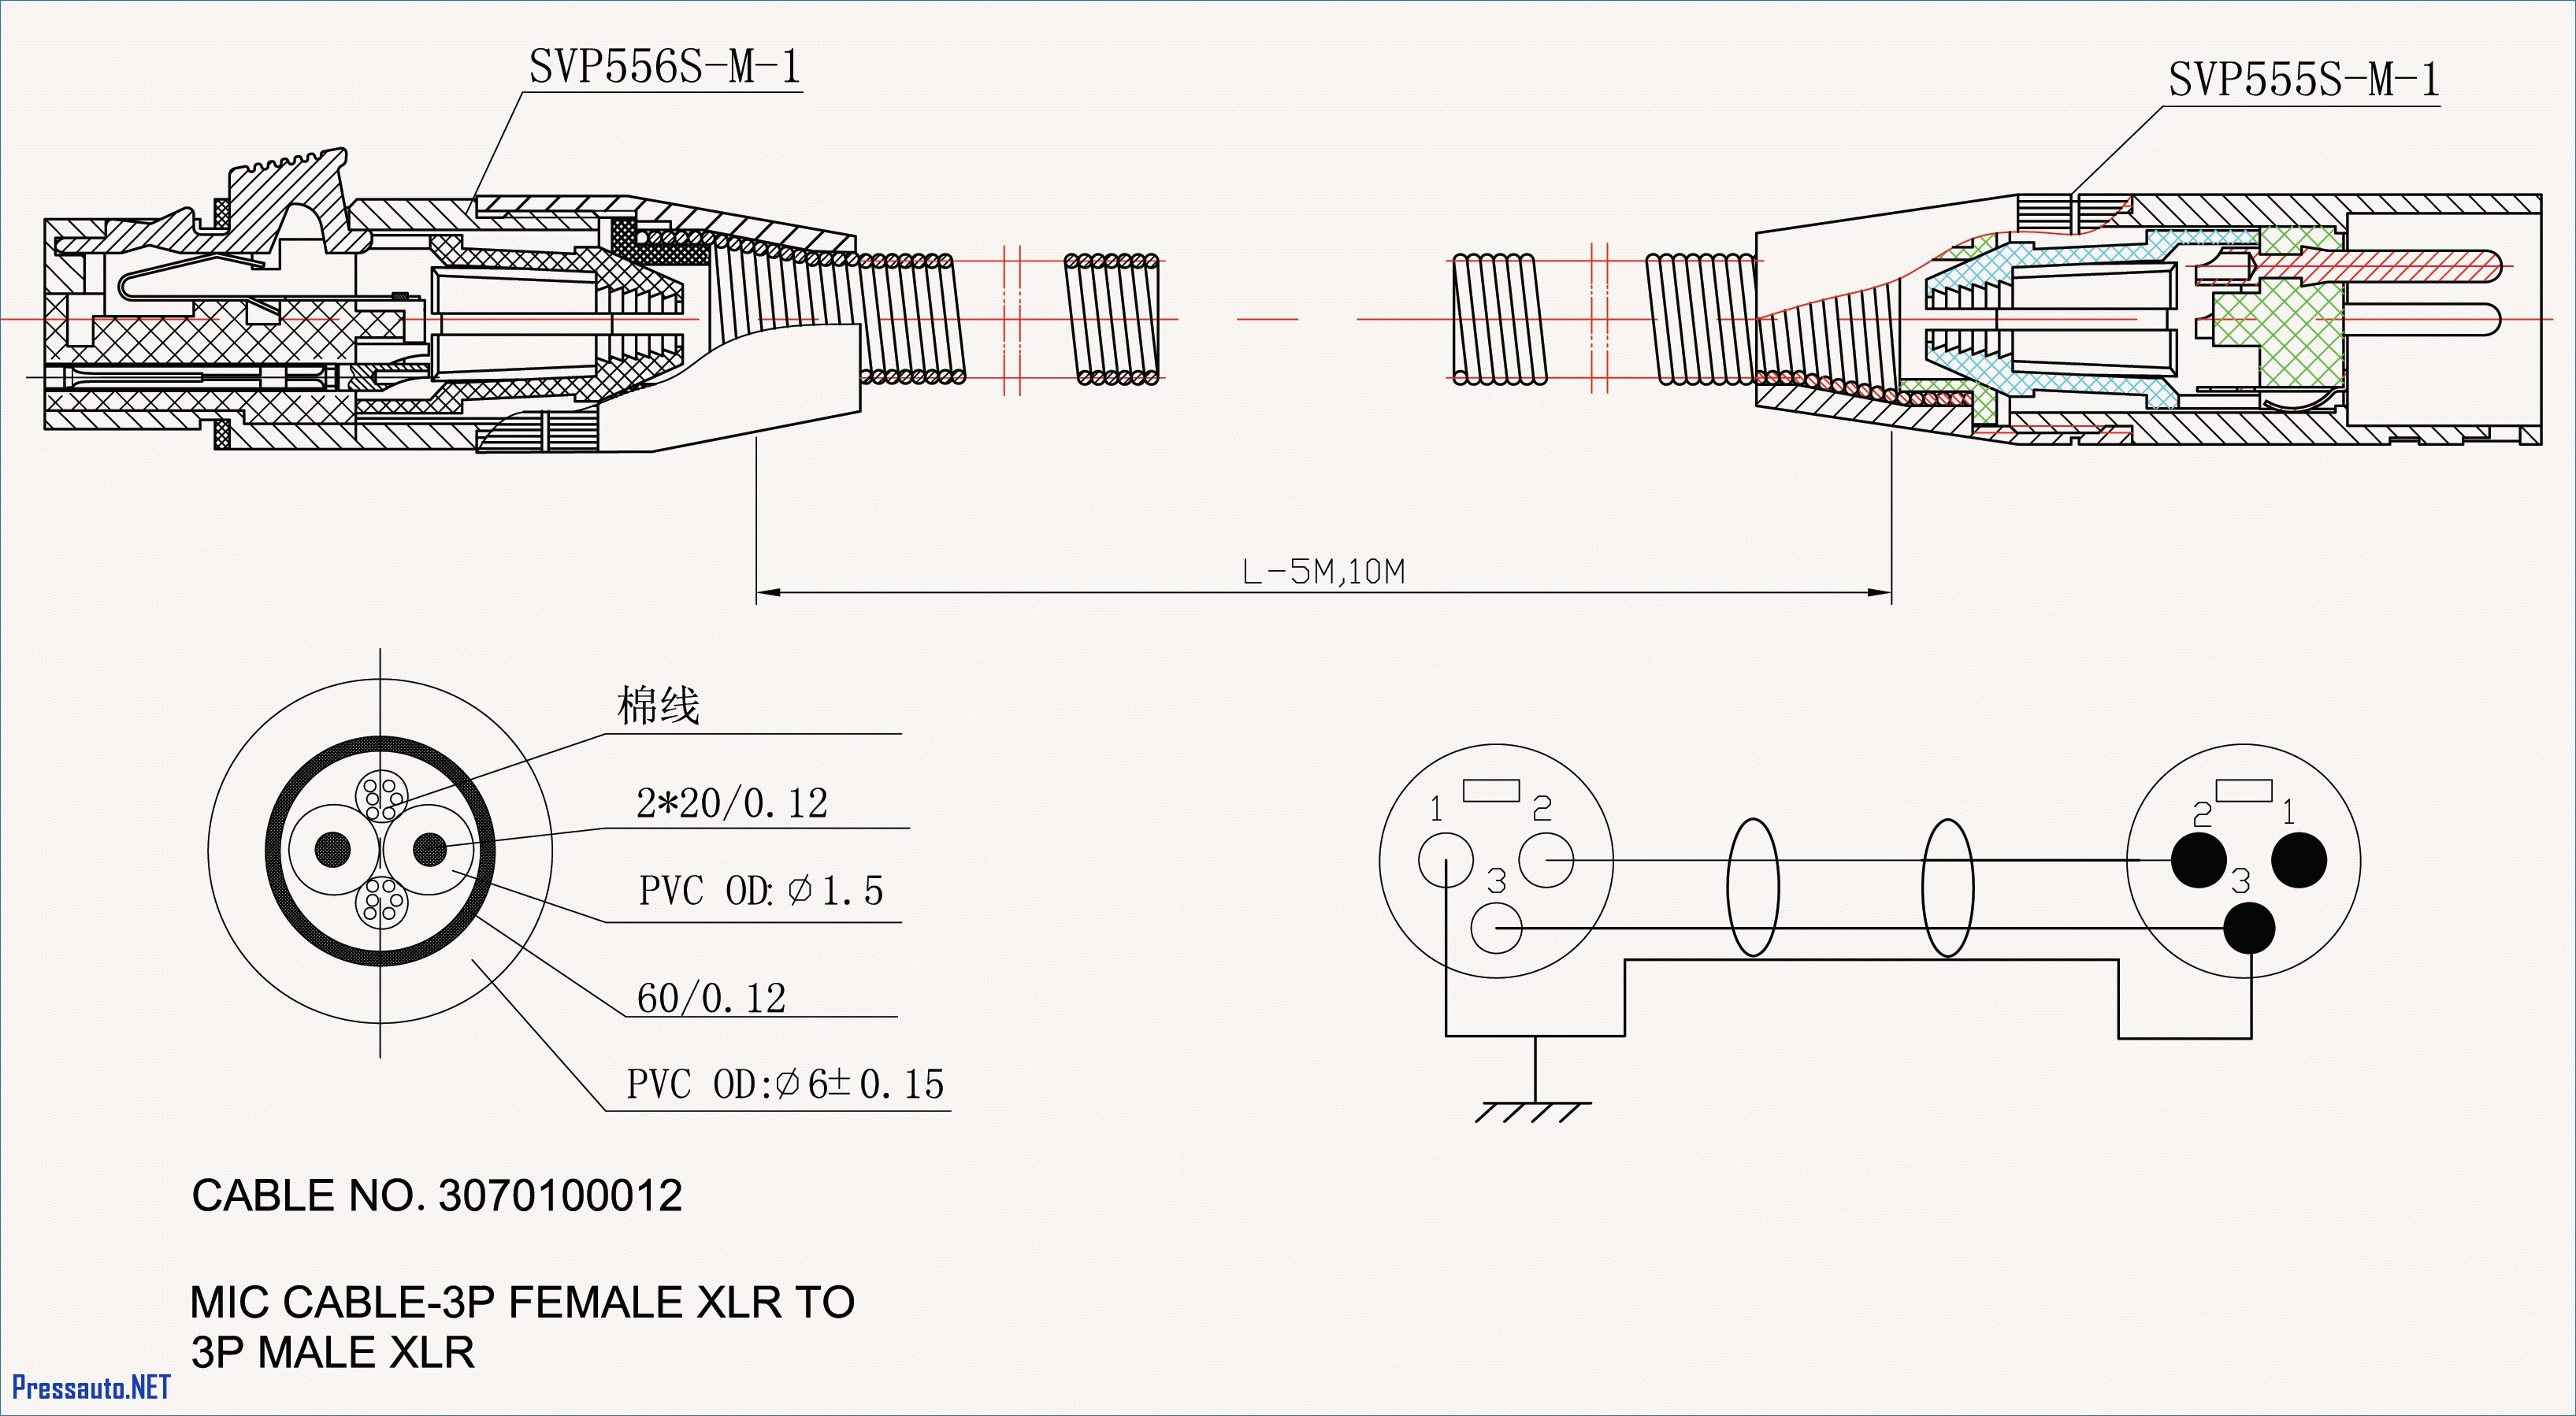 3 prong range outlet wiring diagram Collection-3 Wire Stove Plug Wiring Diagram Beautiful Wiring Diagram for 3 Wire Stove Plug Gallery Wiring 20-b